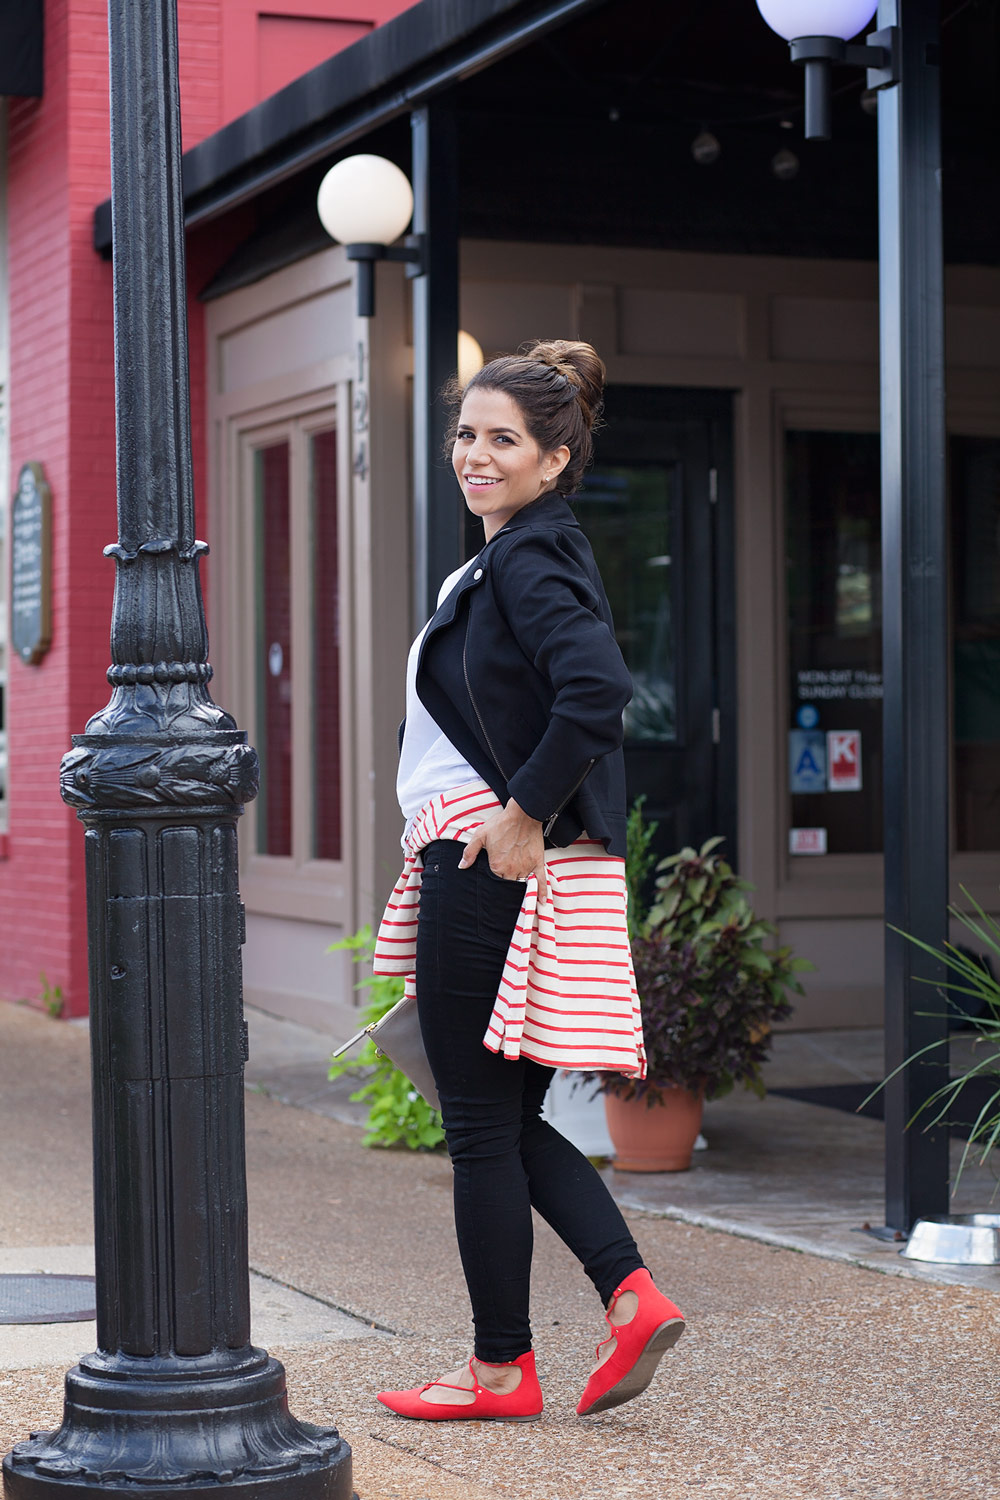 old-navy-fall-outfit-ideas-what-to-wear-casual-look-maternity-style-corporate-catwalk-new-york-fashion-blogger-nyc-8